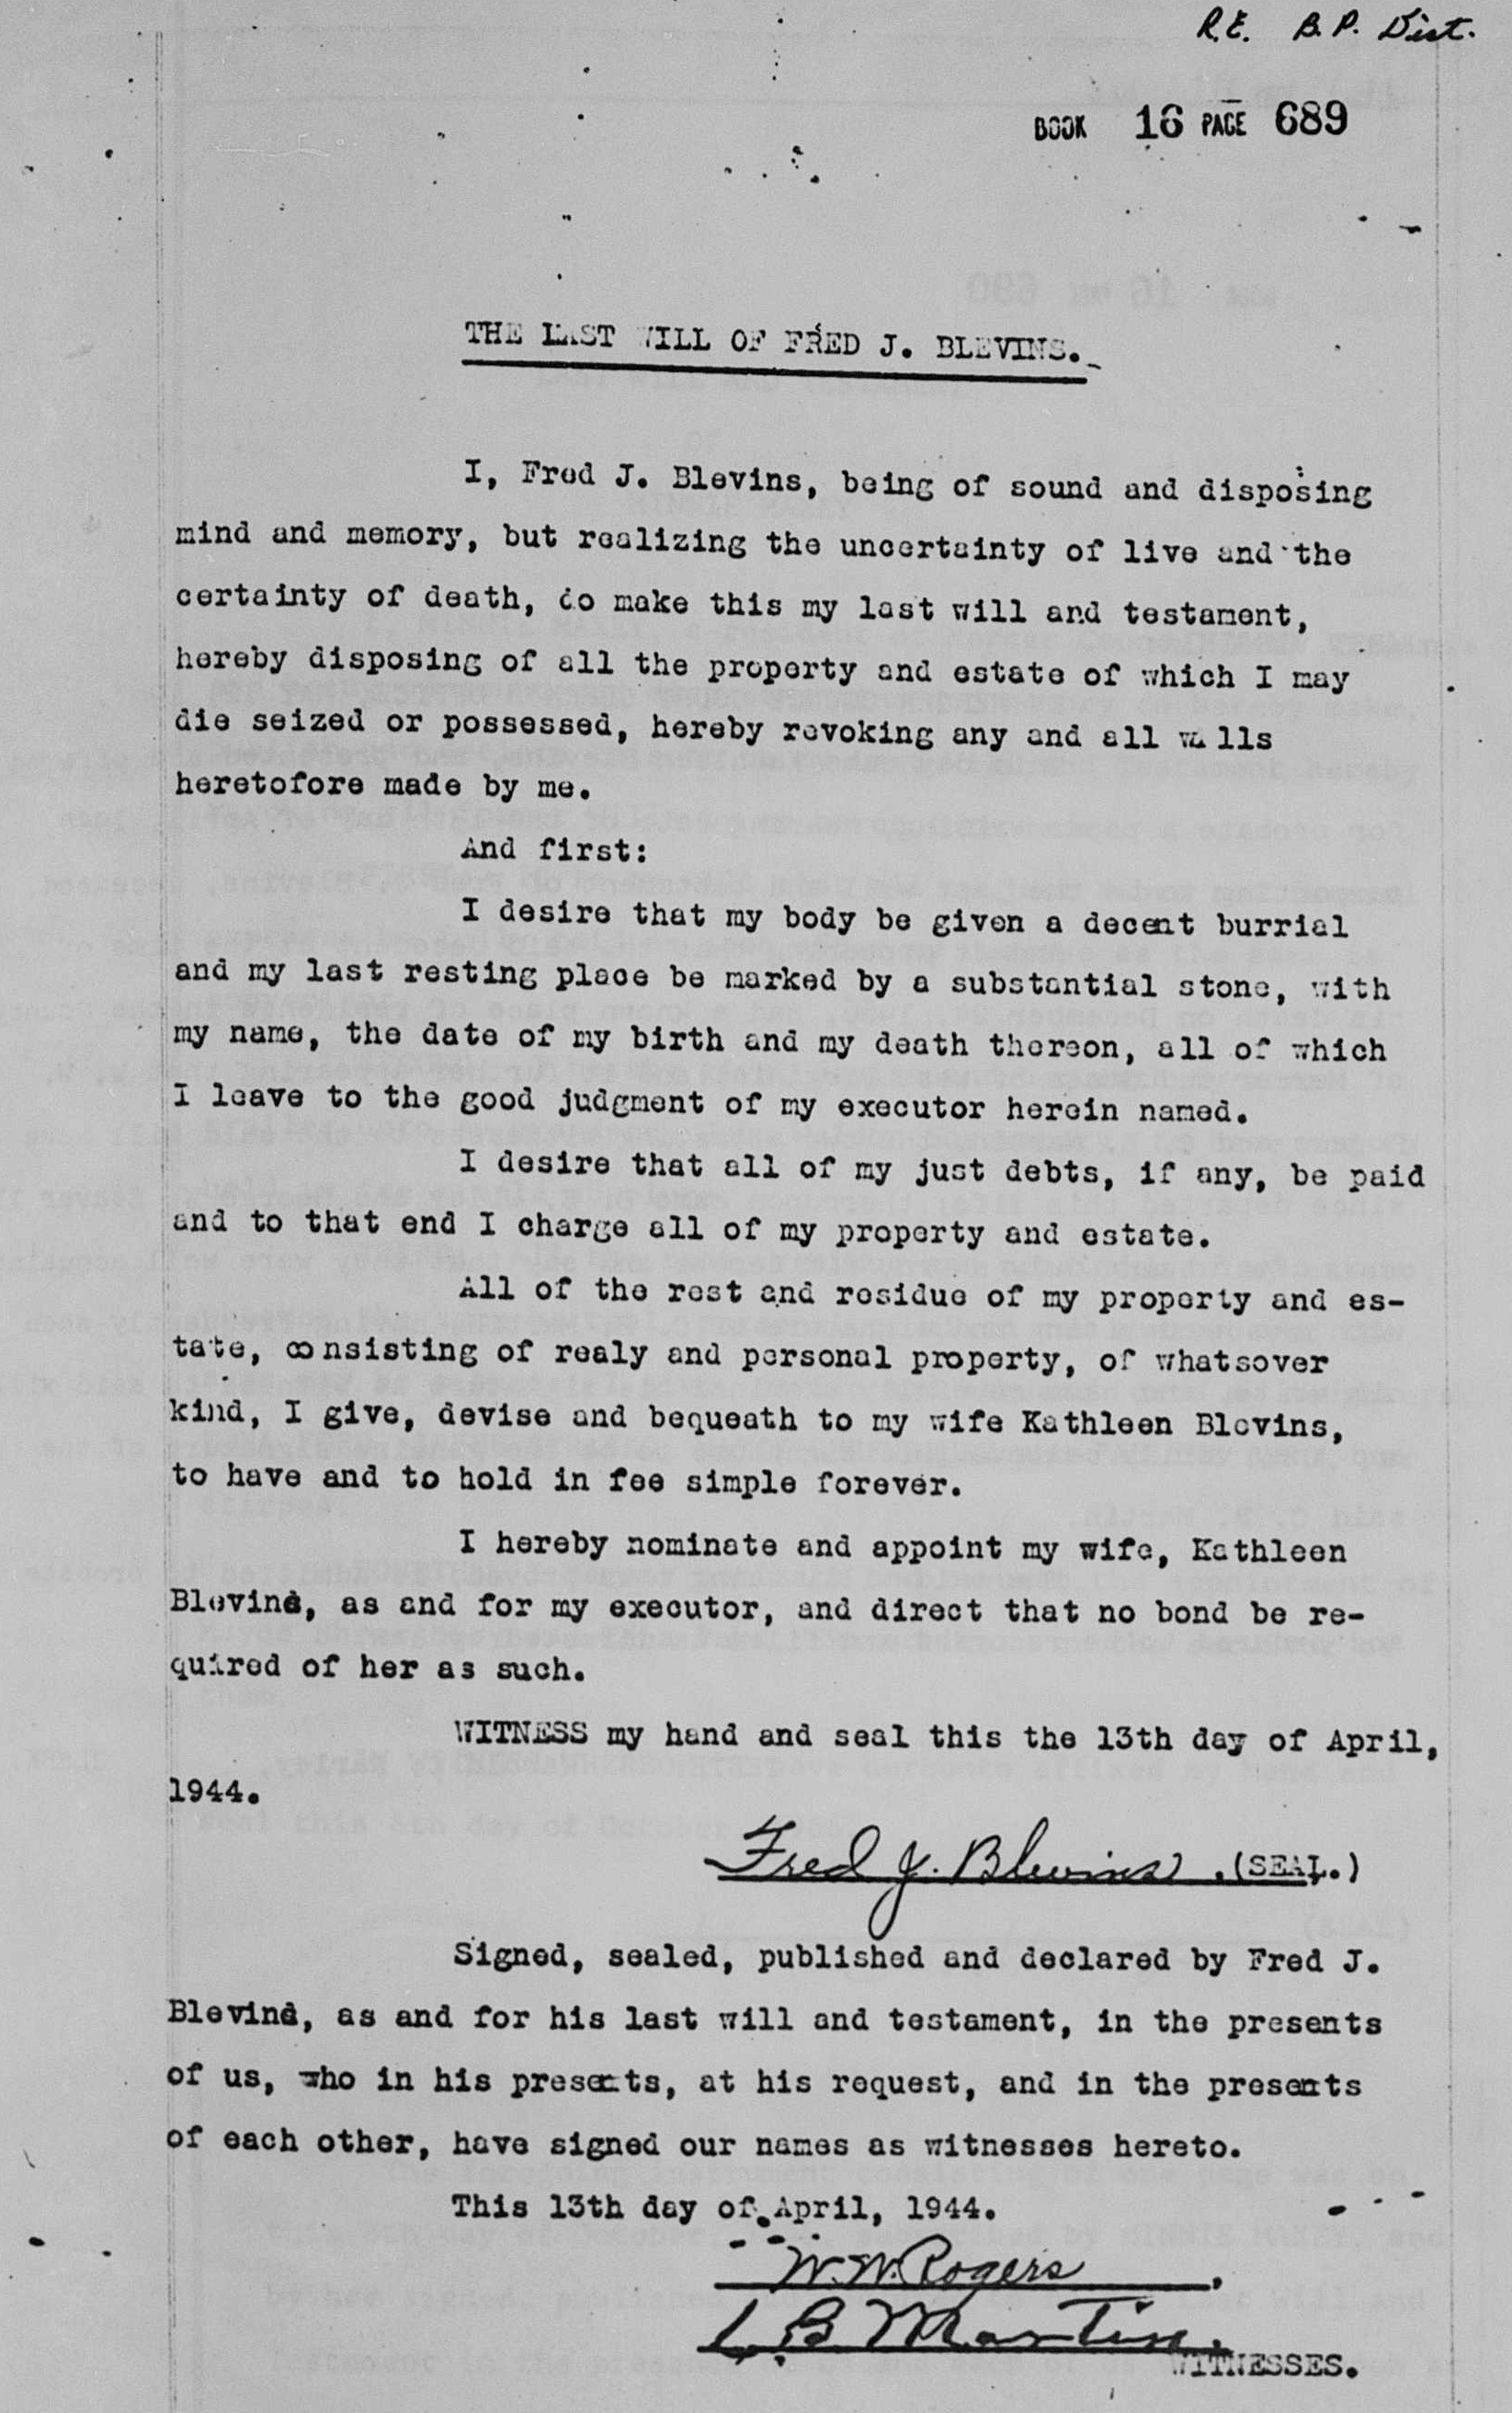 The last will of Fred J Blevins